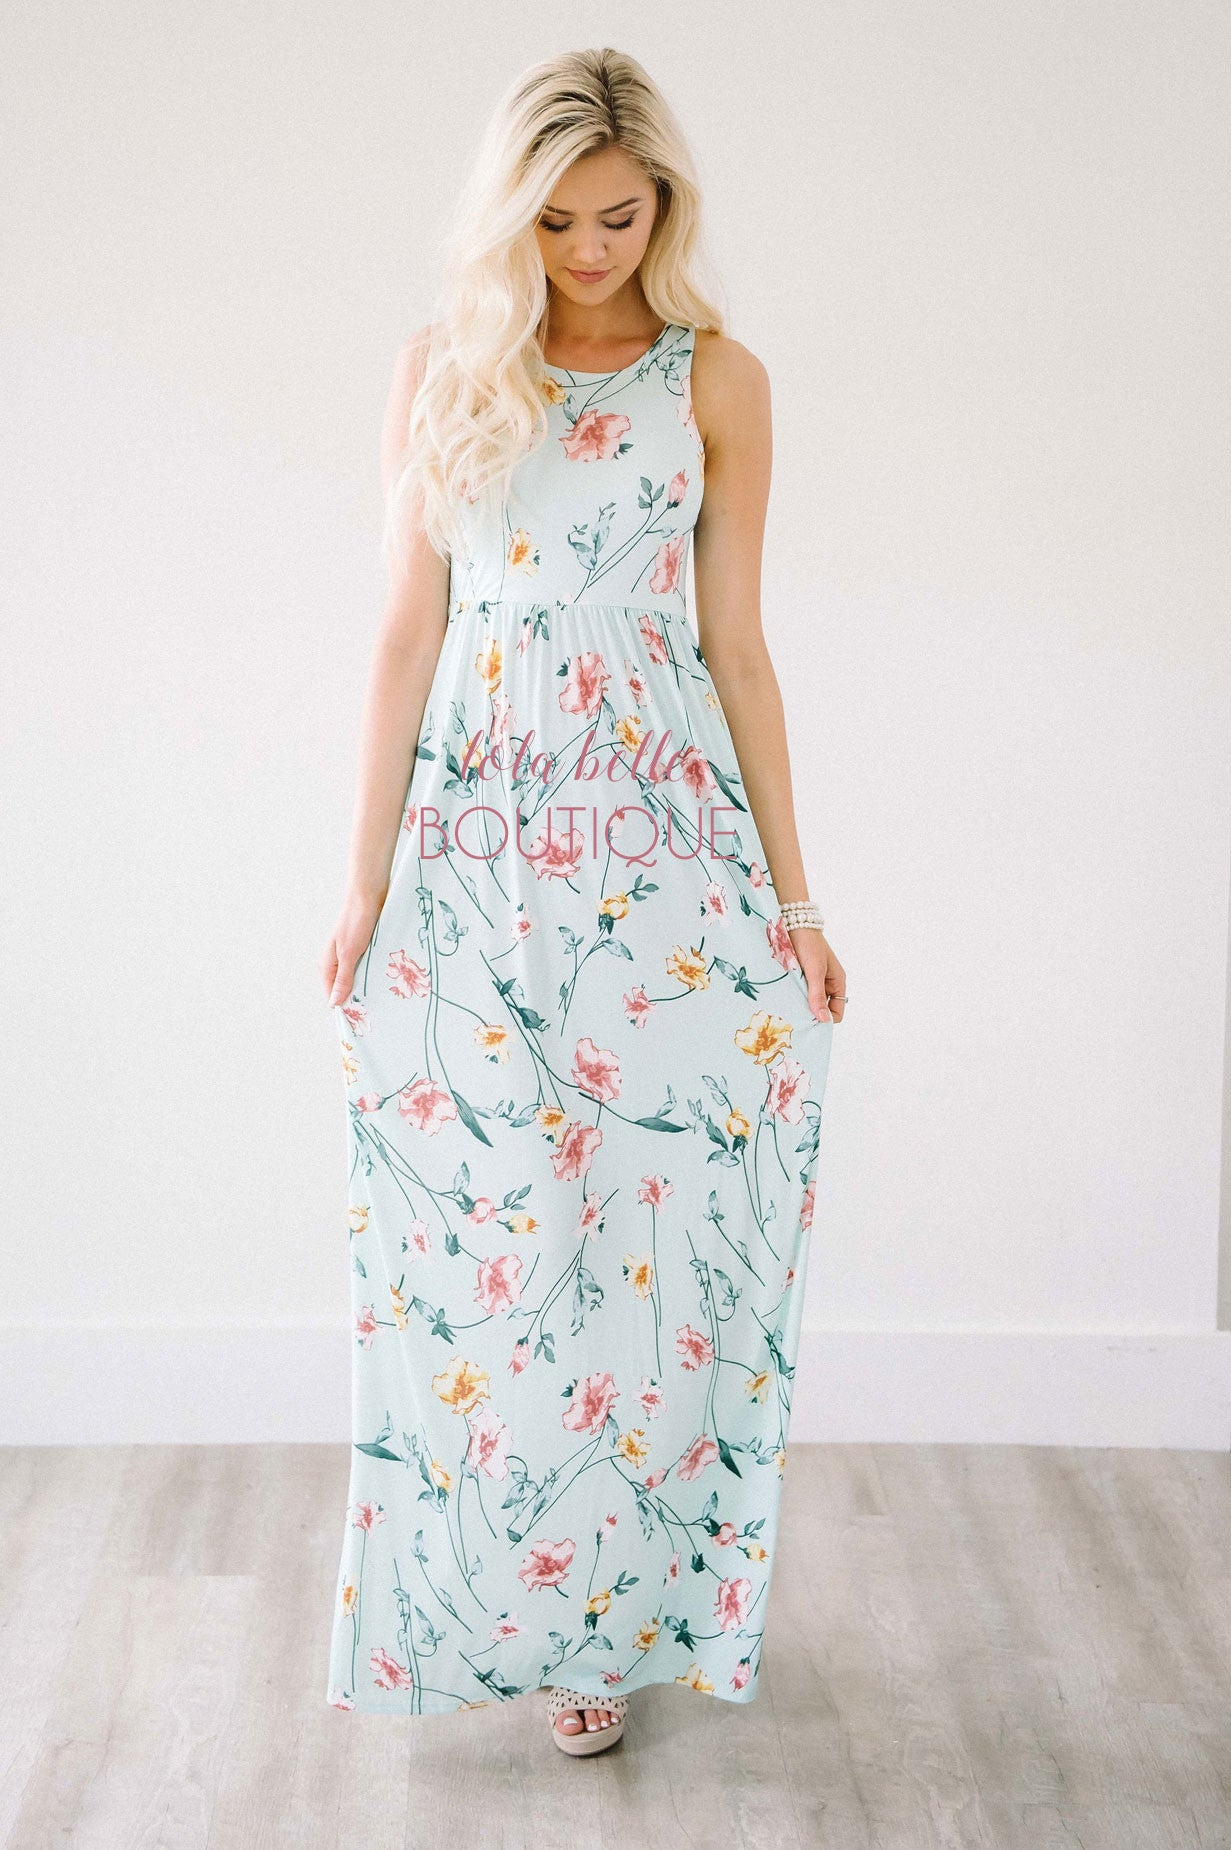 Falling Flowers Pastel Mint Maxi Dress U2013 Shop Lola Belle Boutique